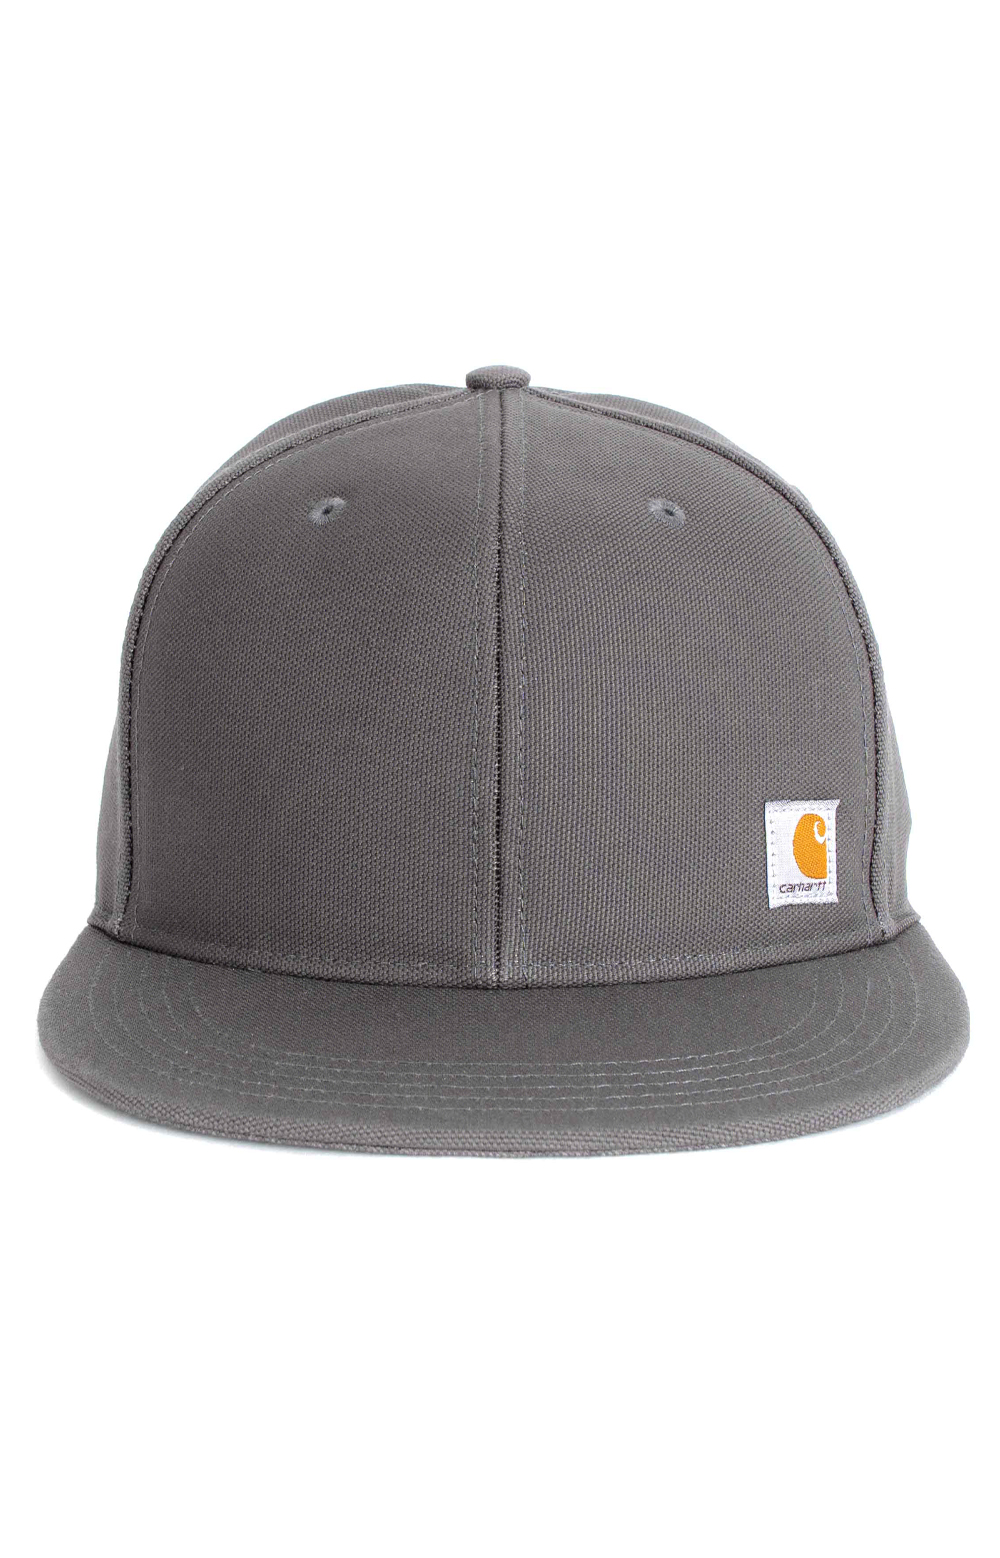 (101604) Ashland Snap-Back Hat - Gravel 2